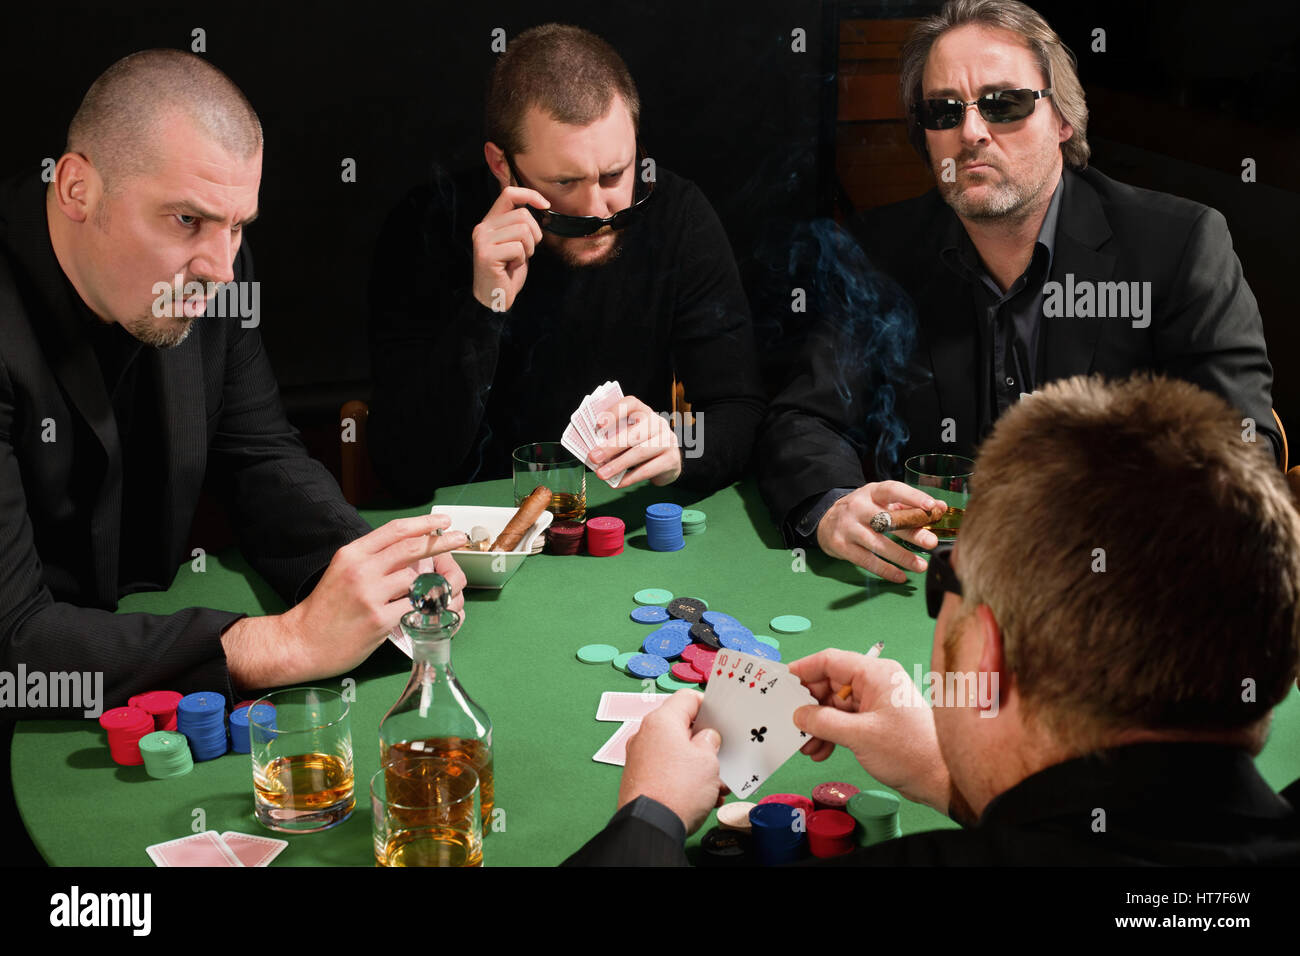 Photo of three male poker players staring across in anger at the fourth player. Cards have been altered to be generic. - Stock Image